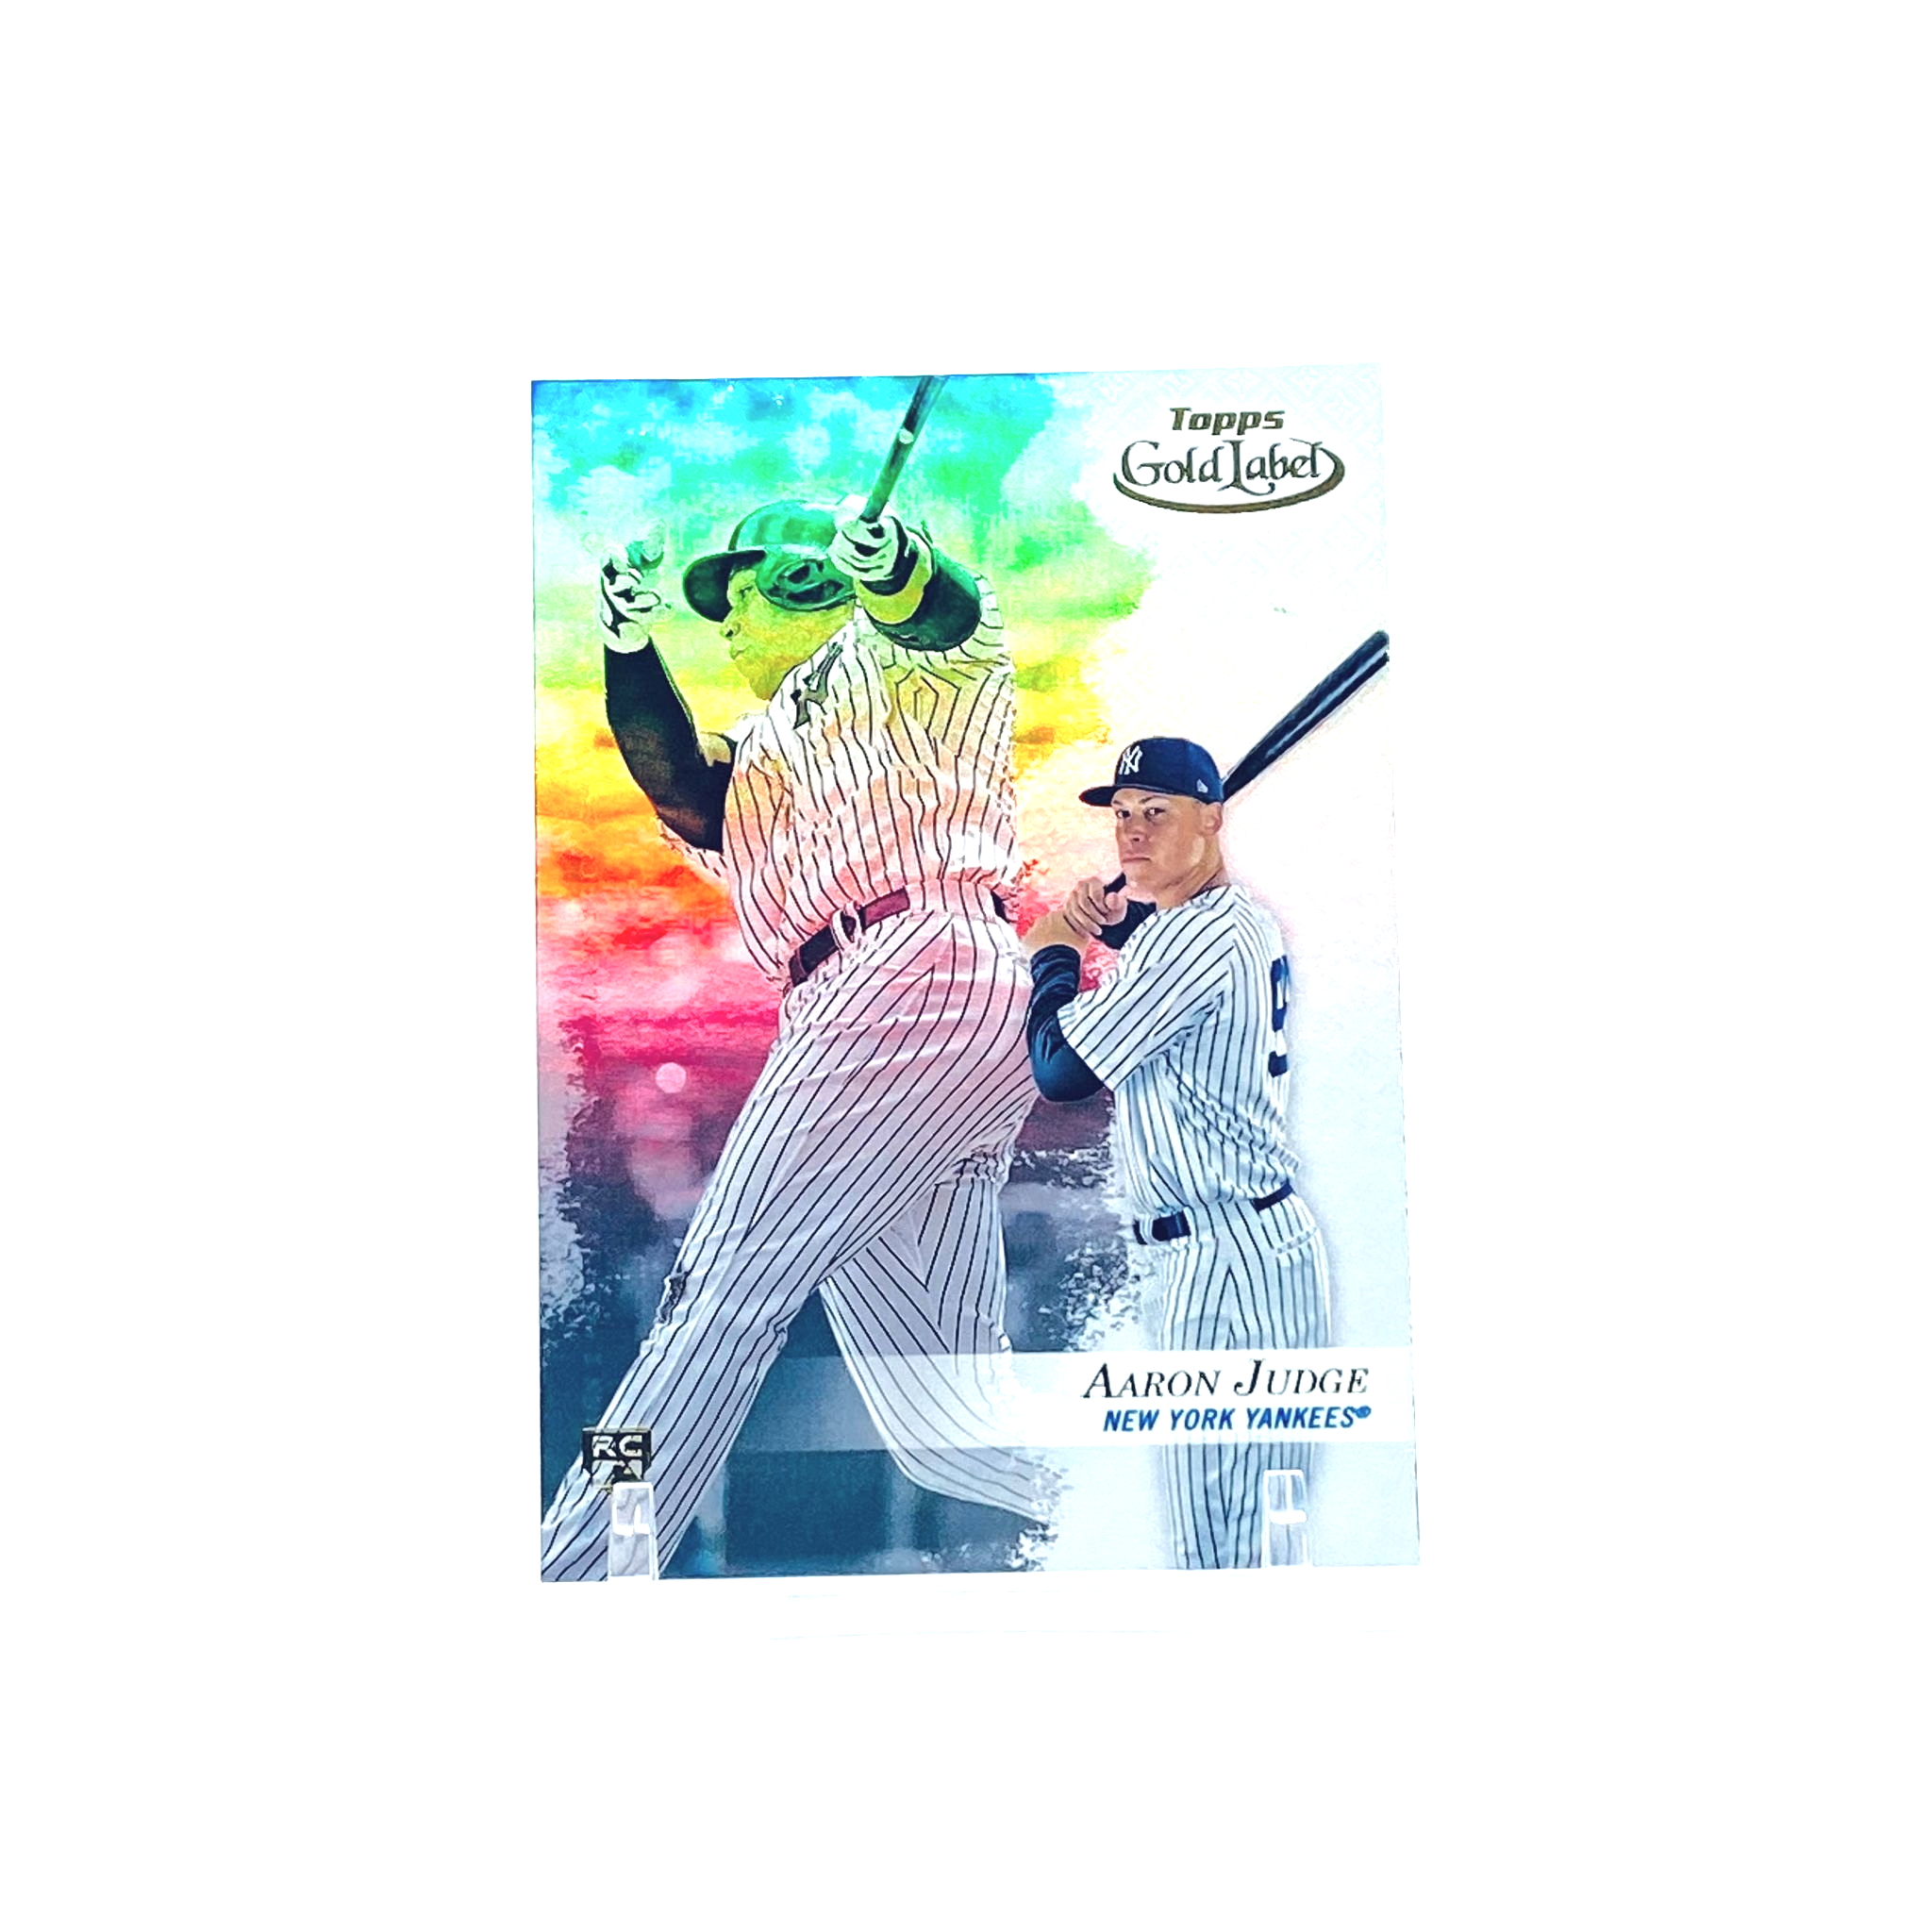 2017 Topps Gold Label Class 2 Aaron Judge Rookie Card New York Yankees